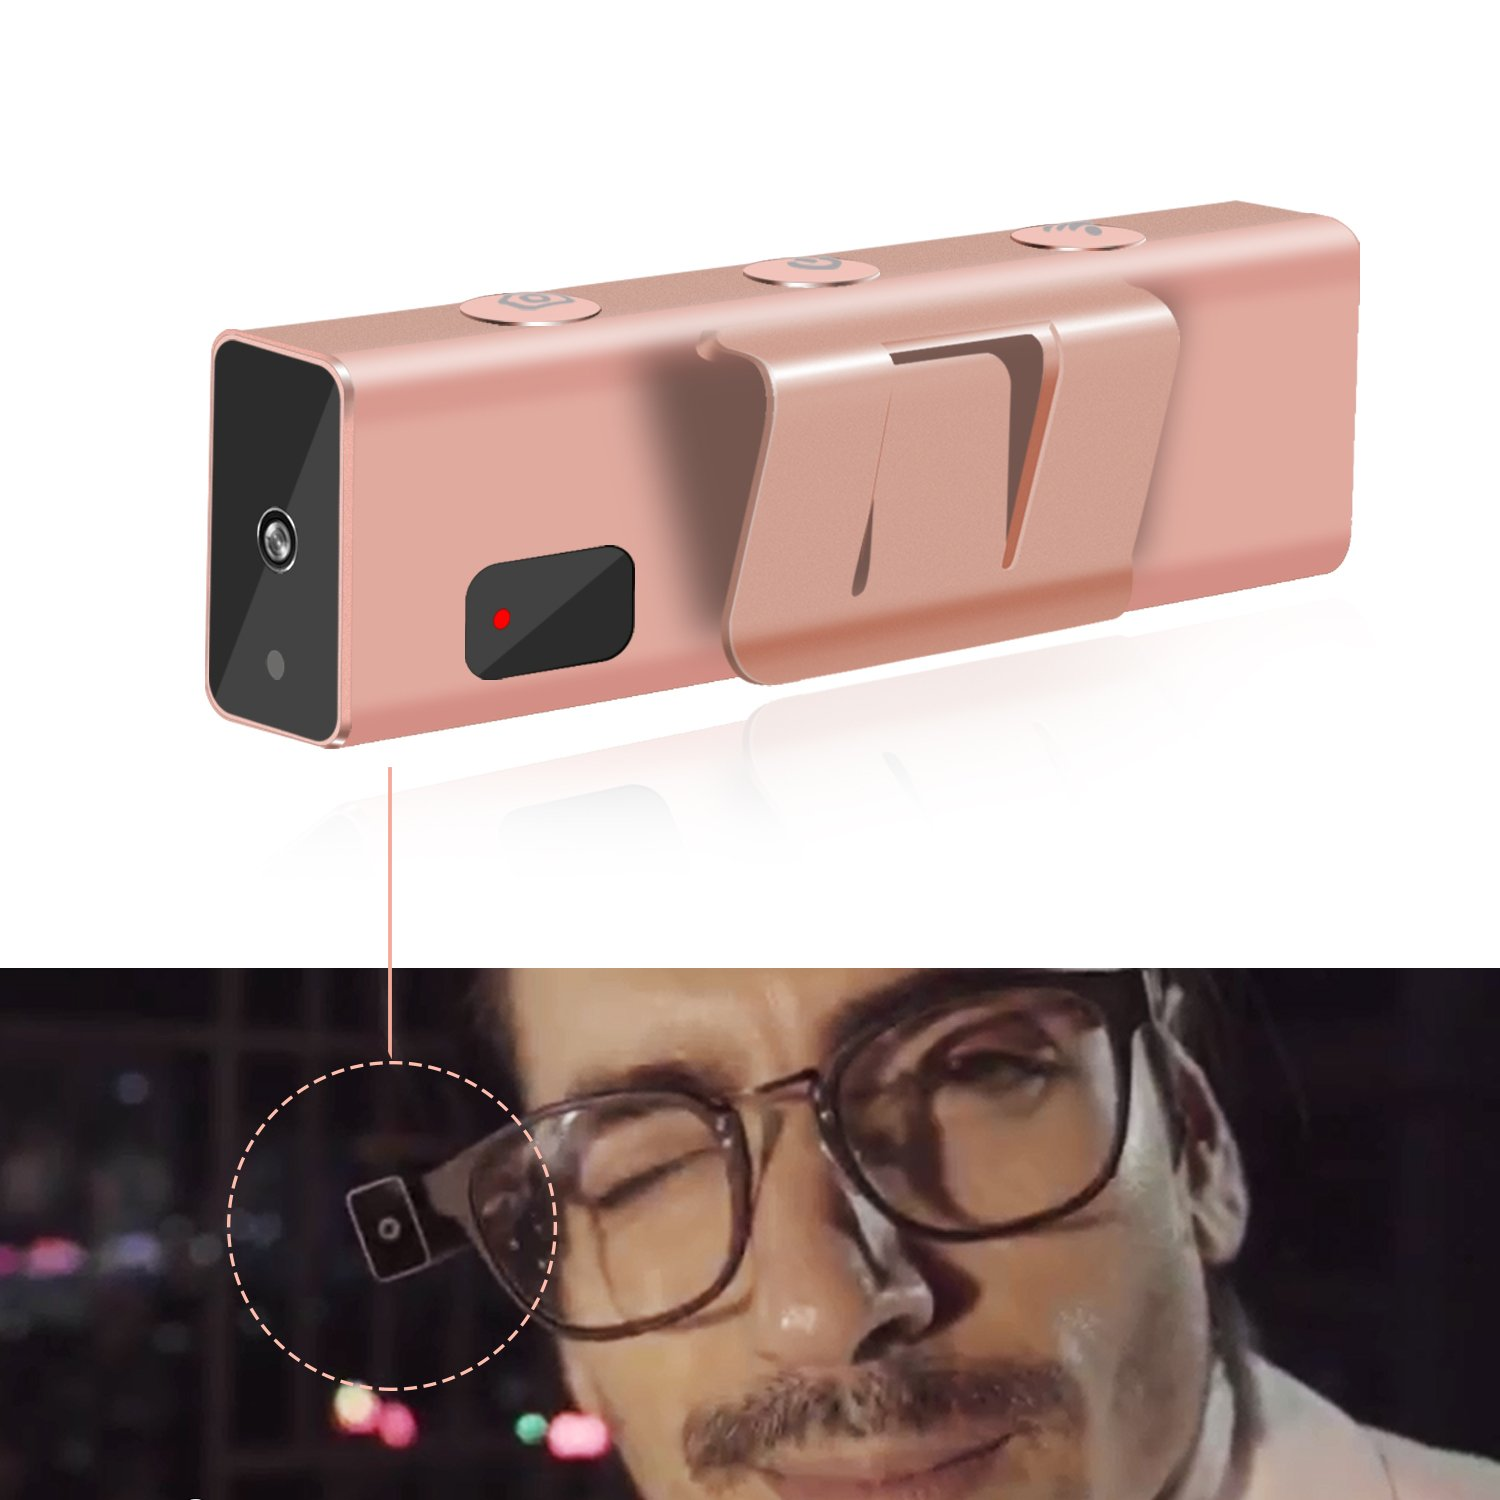 DONWELL Portable Smart Camera On Glasses Wireless Intelligent Wink Blink Induction Mini Video Recorder 8MP 1080P 16G Hands Free Electronics For Sport Travel Fashion Christmas Gift Birthday Present by DONWELL